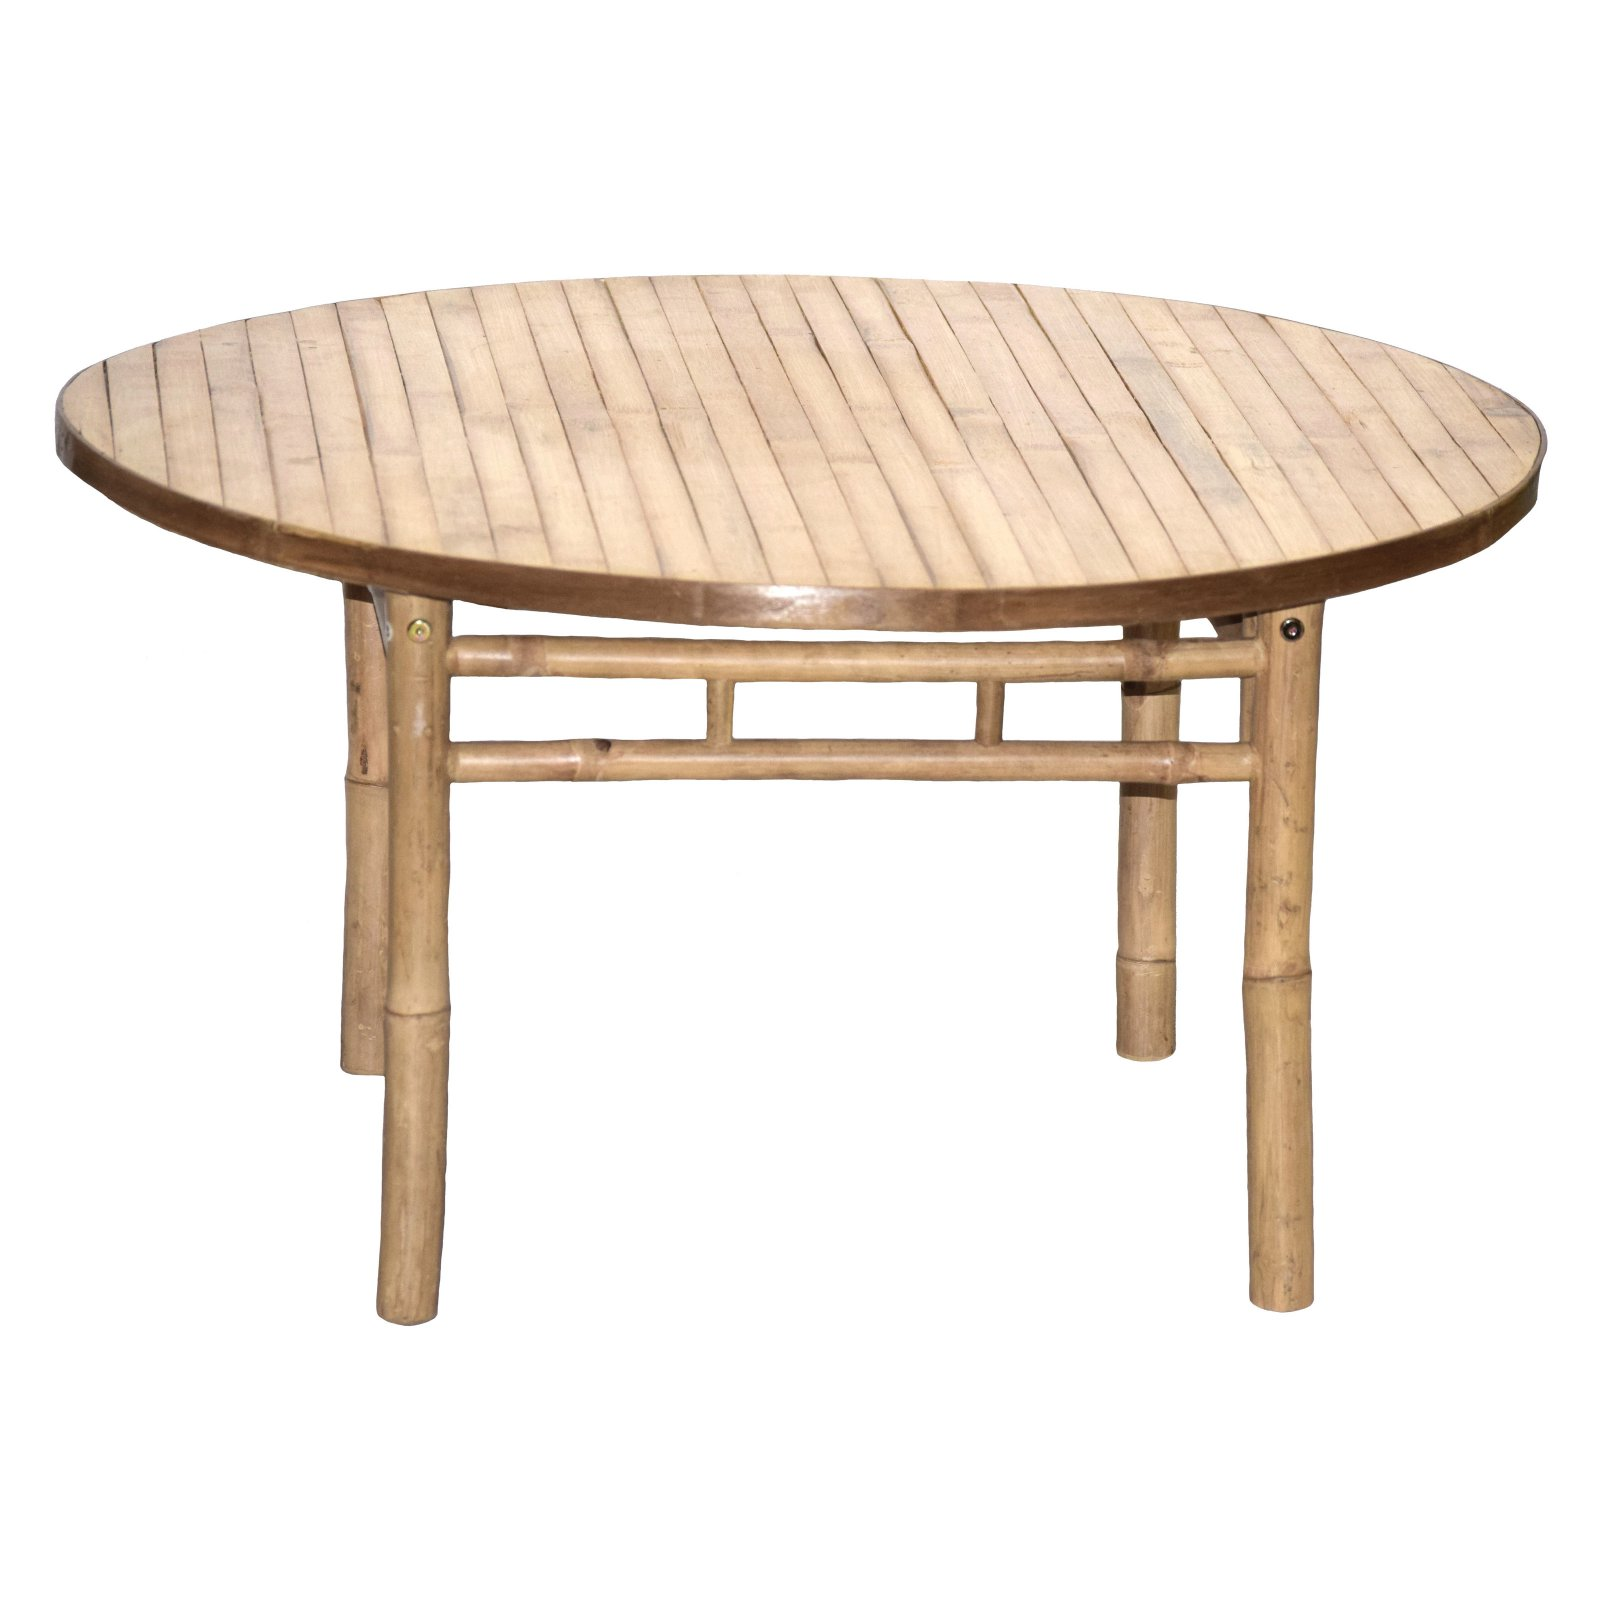 Bamboo54 KD 35 in. Round Patio Coffee Table